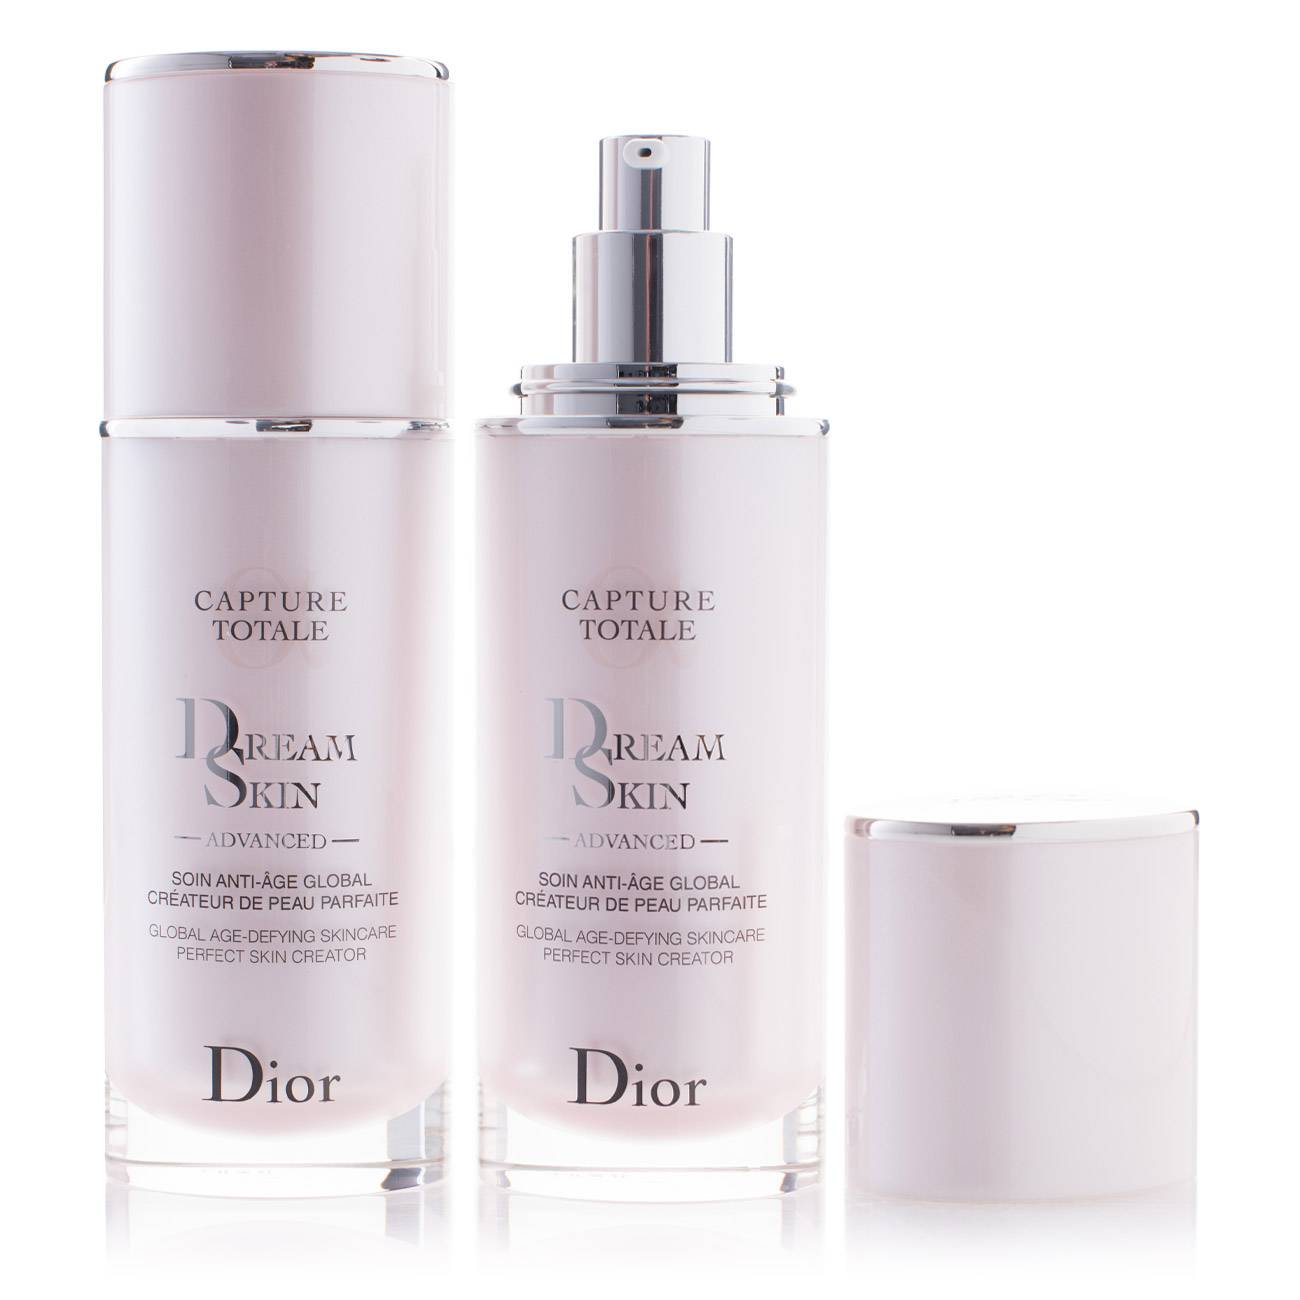 CAPTURE TOTALE ADVANCED DUO SET 100 Ml